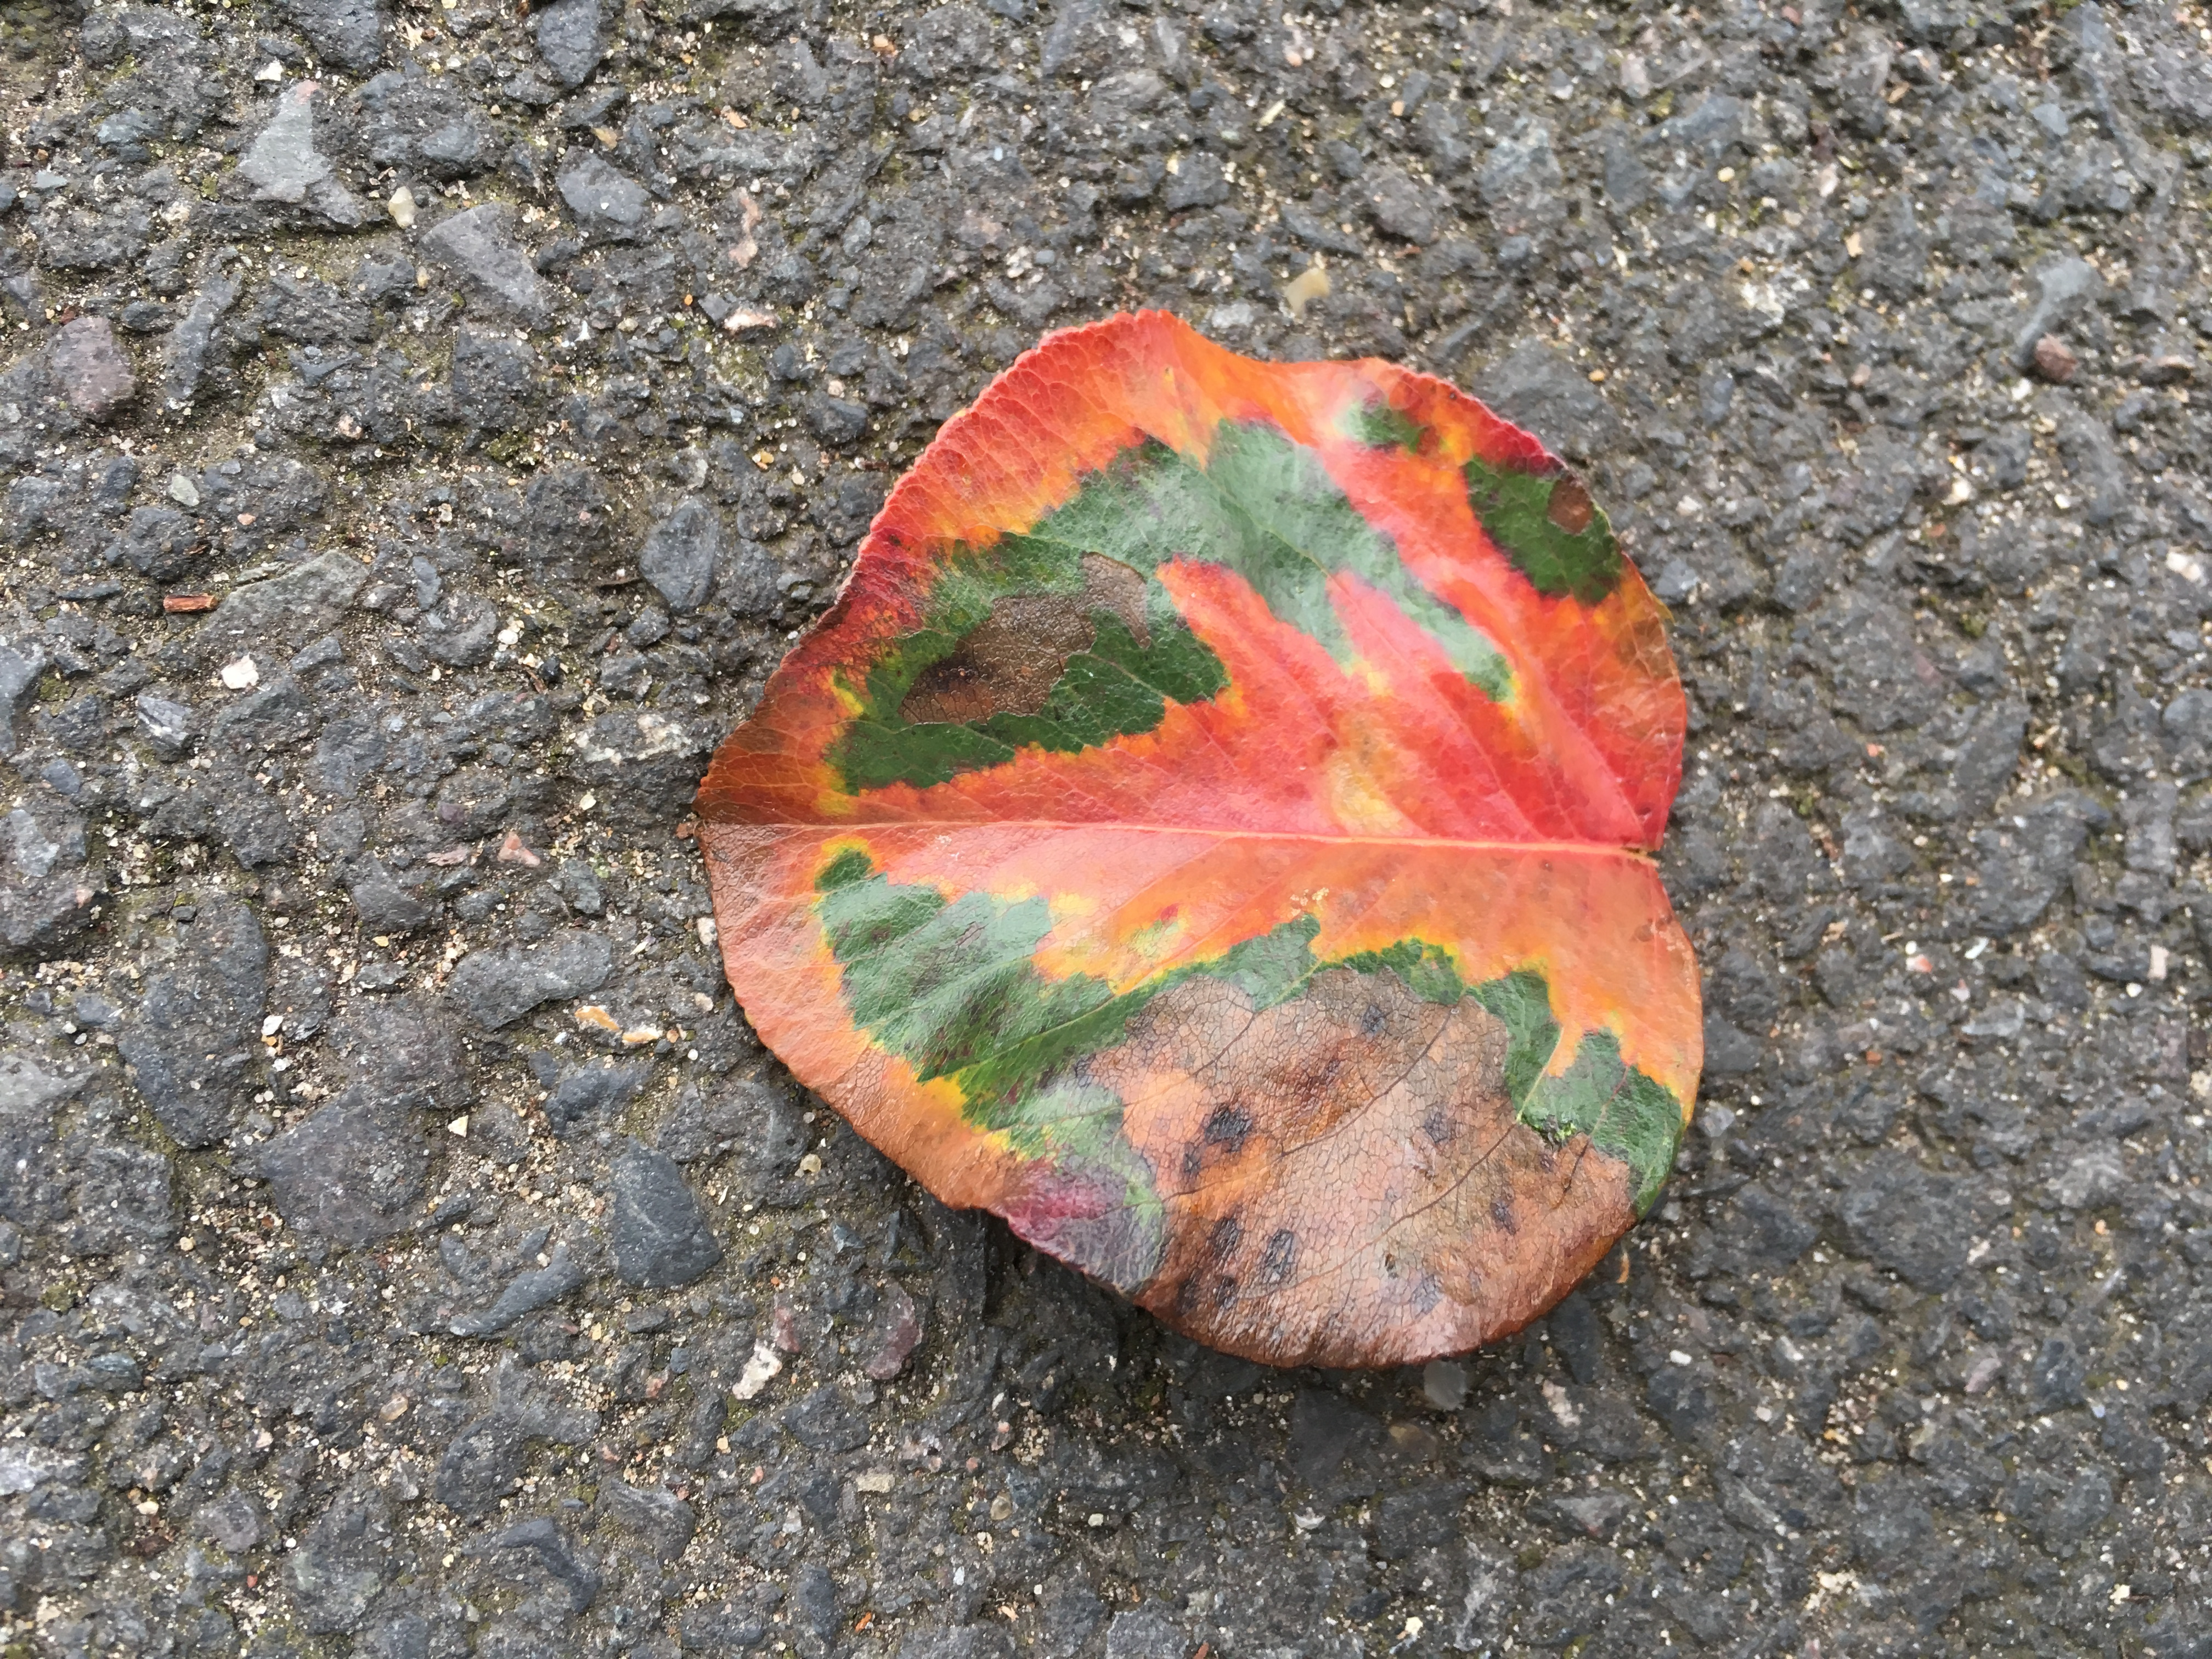 Leaf Autumn changing like a tumour dissolving